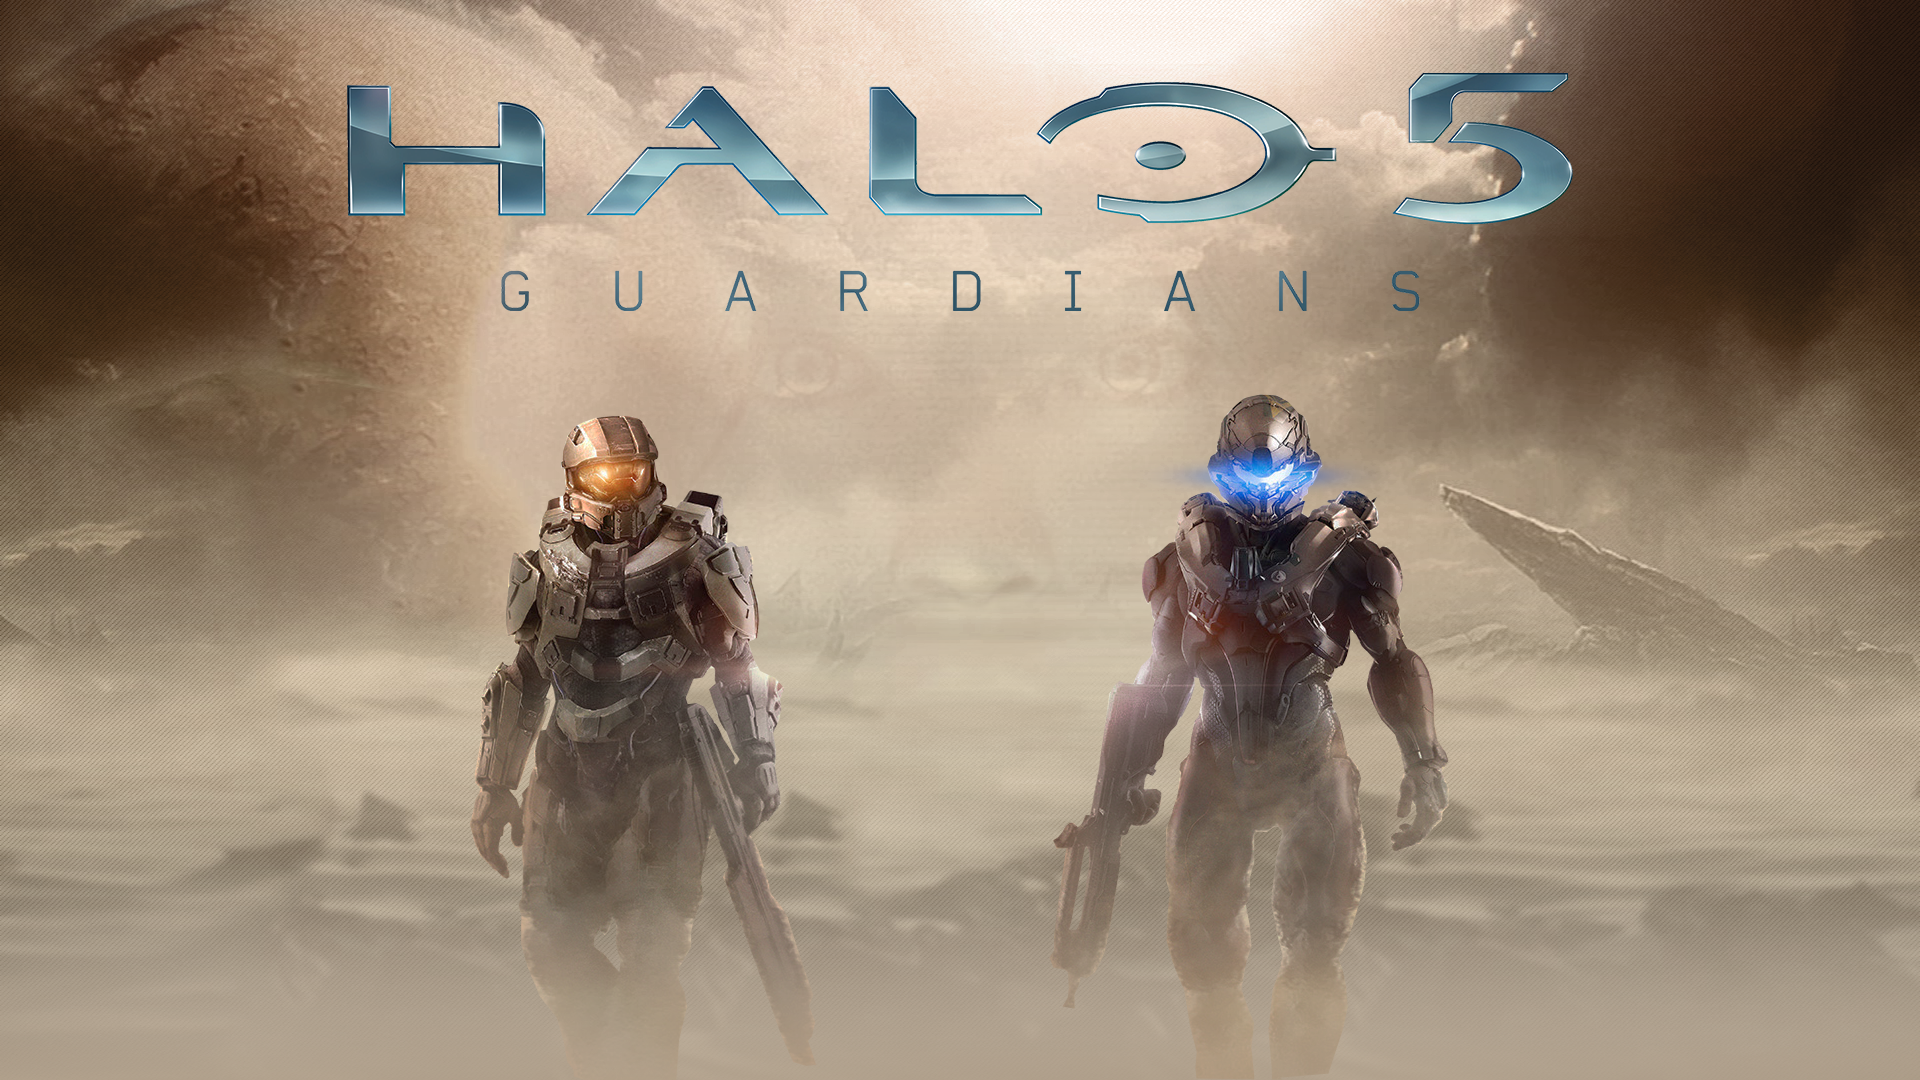 Halo 5 Guardians Wallpapers HD